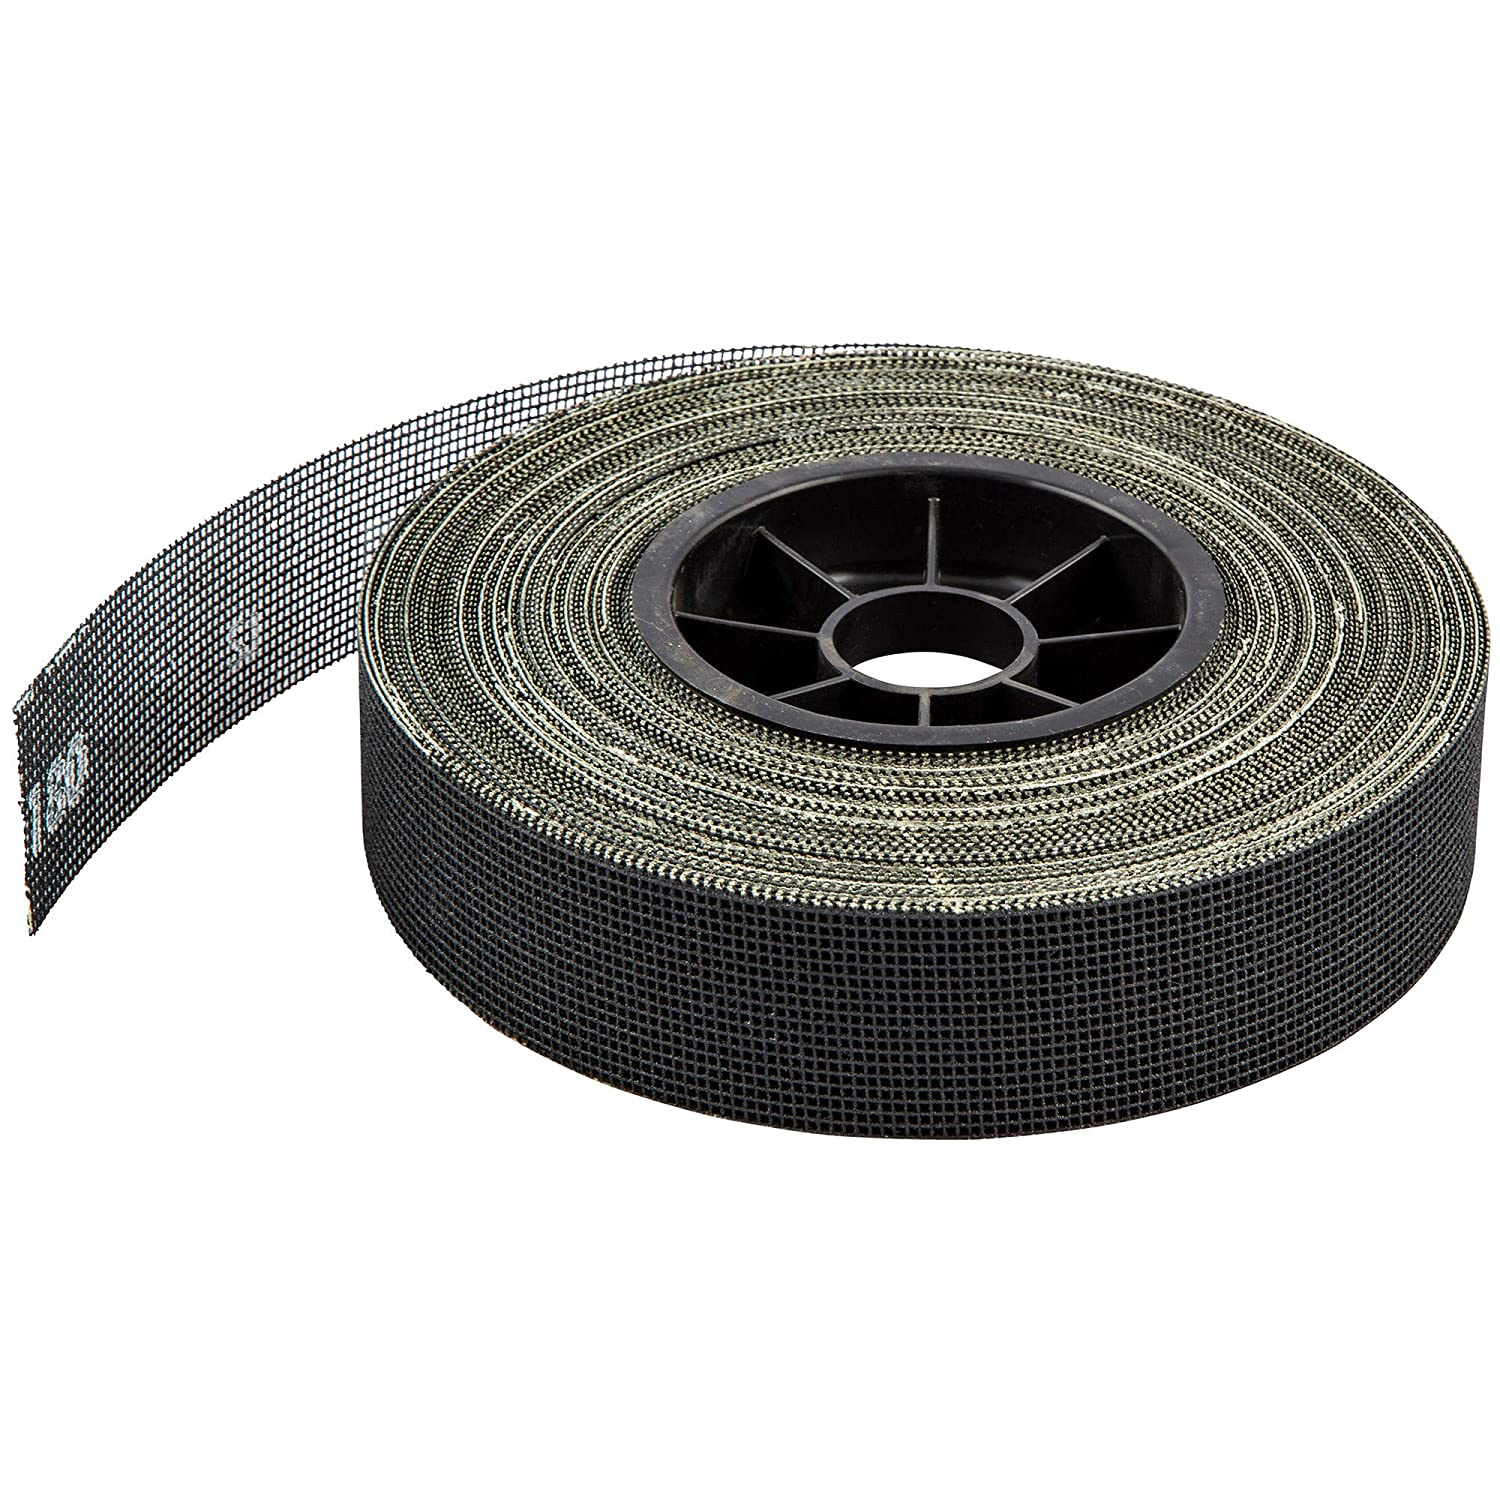 1.5X25 421Q Durite 180Grit Screen, Sold As 1 Roll